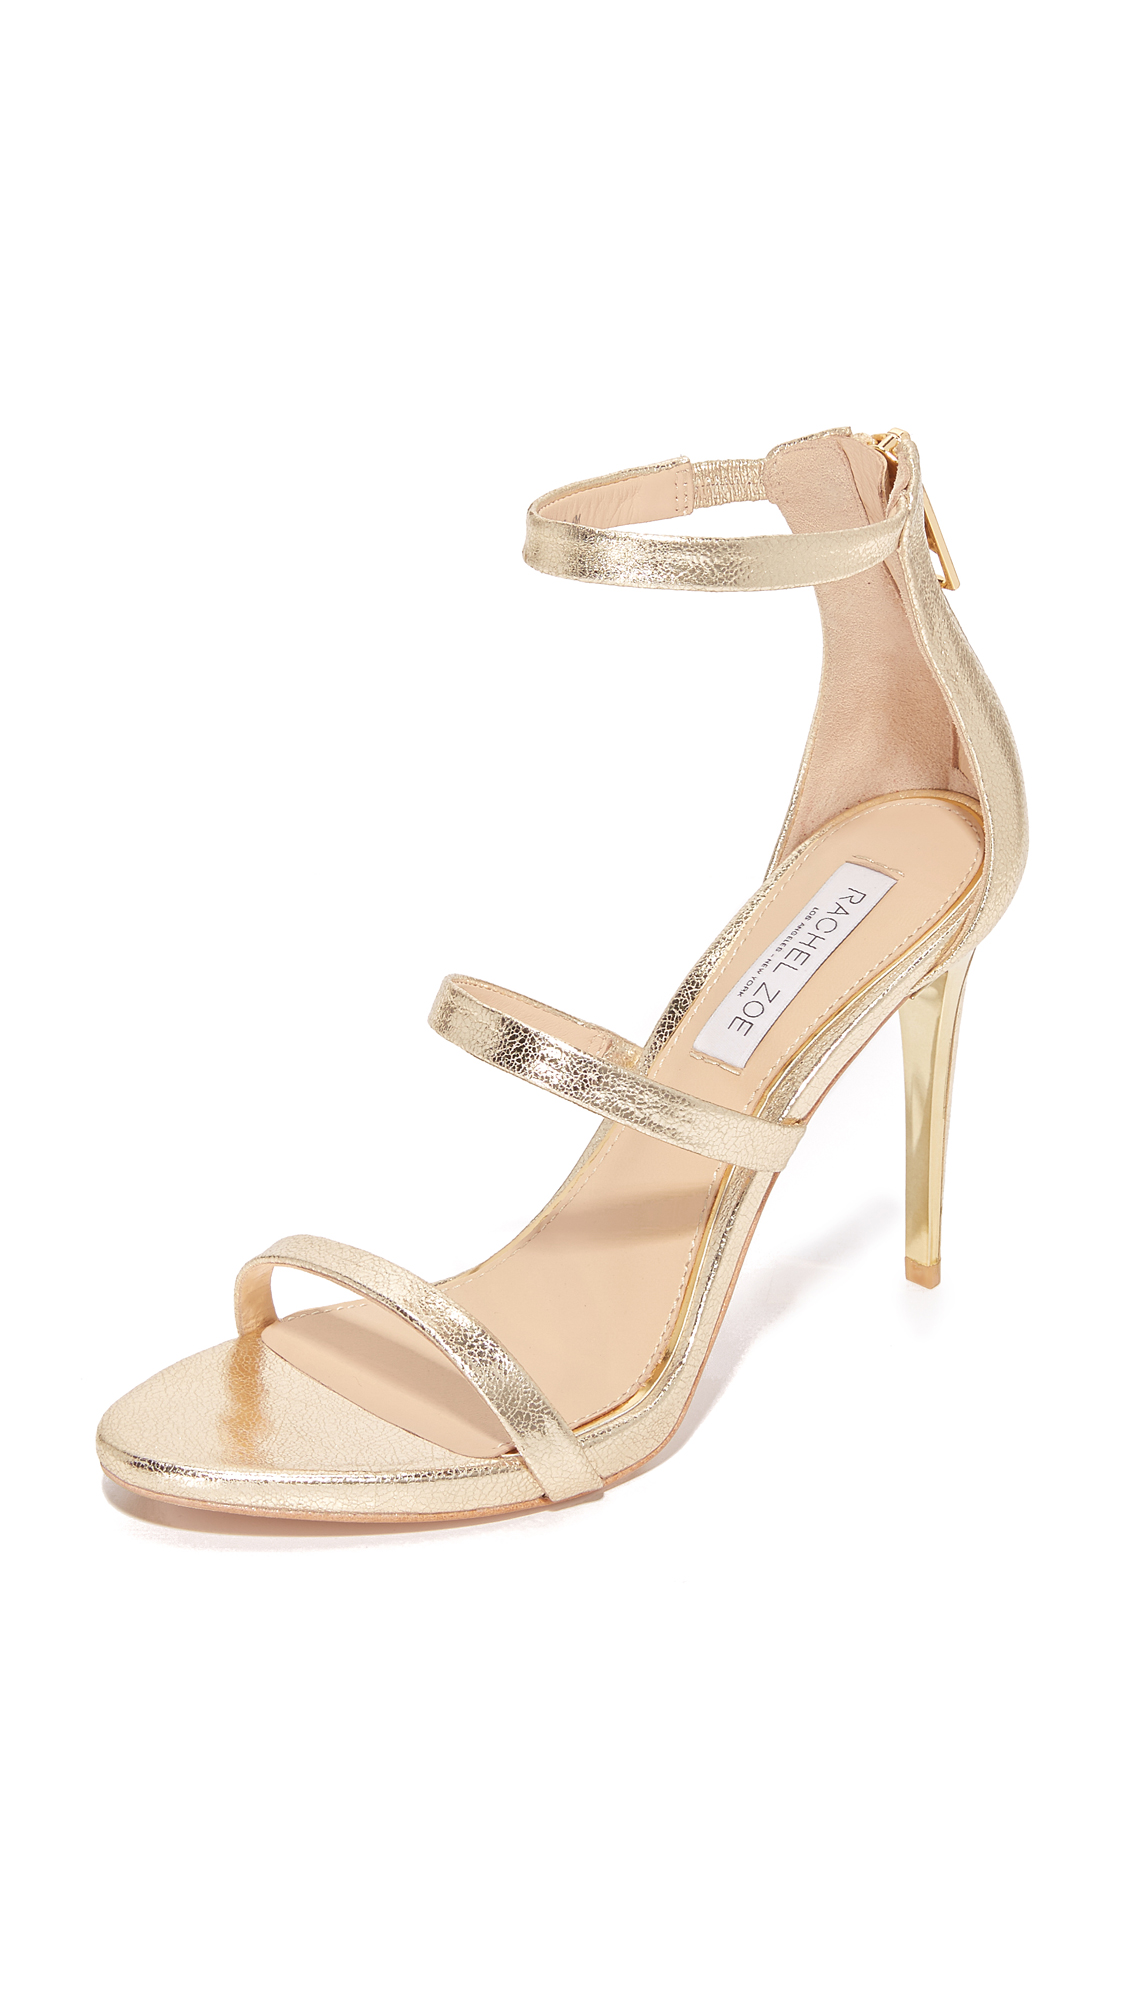 rachel zoe female rachel zoe viv sandals light gold